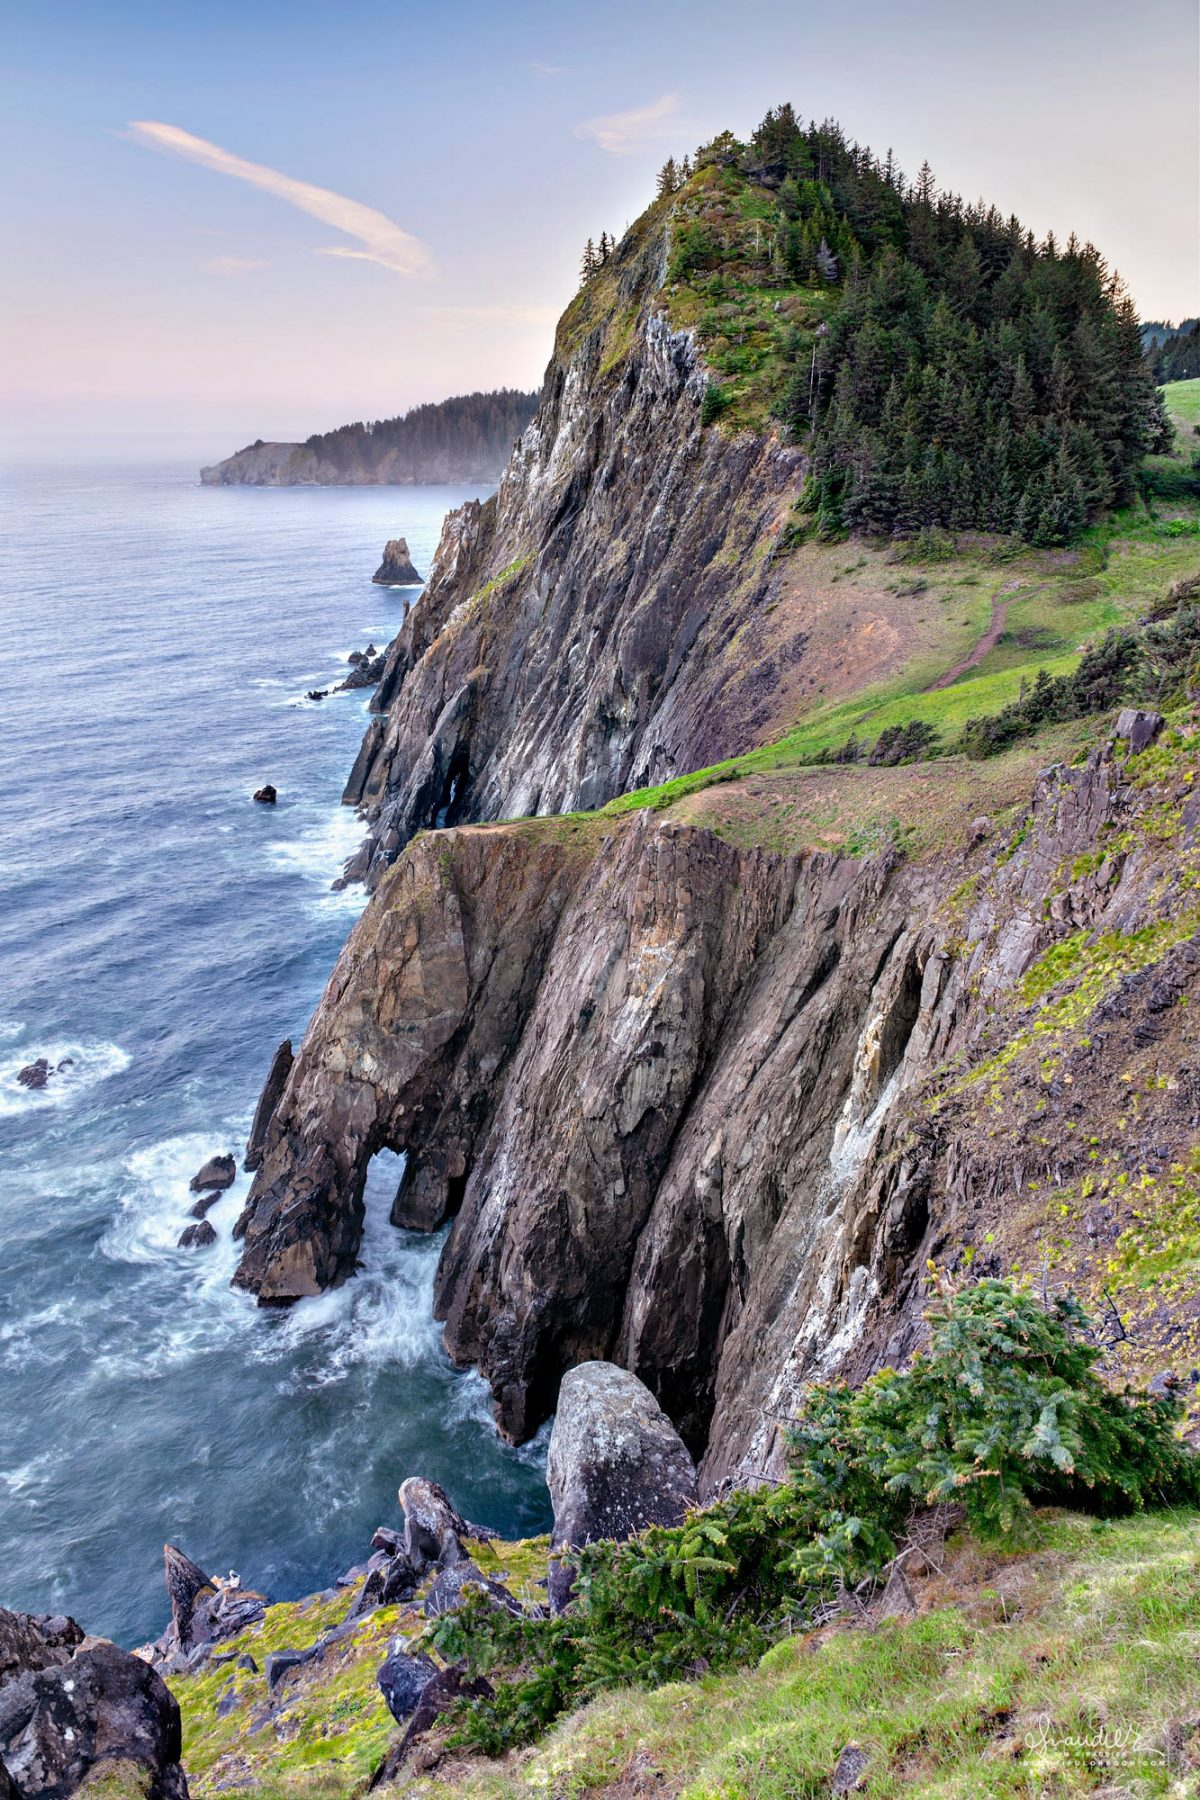 North view of sea cliffs at Neahkahnie Mountain and Cape Falcon. Oswald West State Park, Tillamook County, Oregon Coast landscape photography